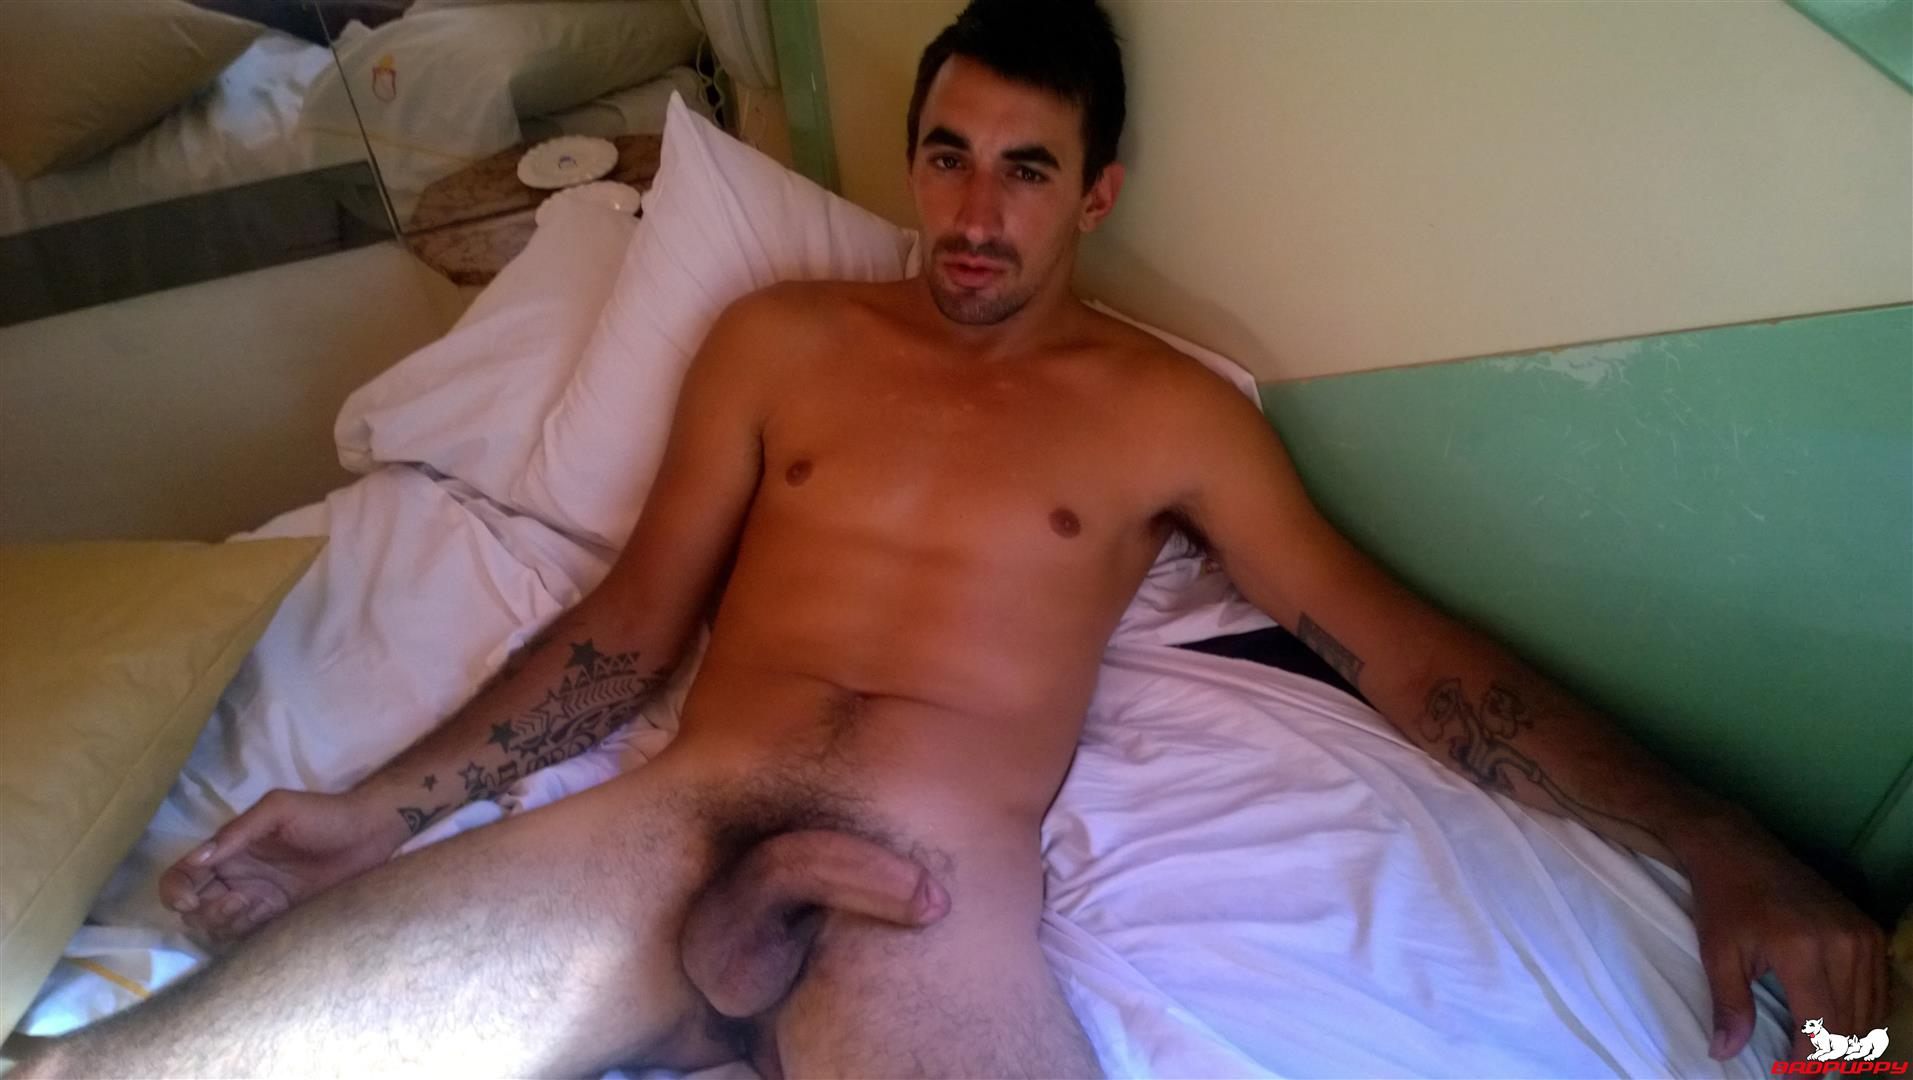 Badpuppy Fabian Flores Argentinian with a Big Uncut Cock 14 Argentinian Hunk With A Big Uncut Cock Auditions For Gay Porn